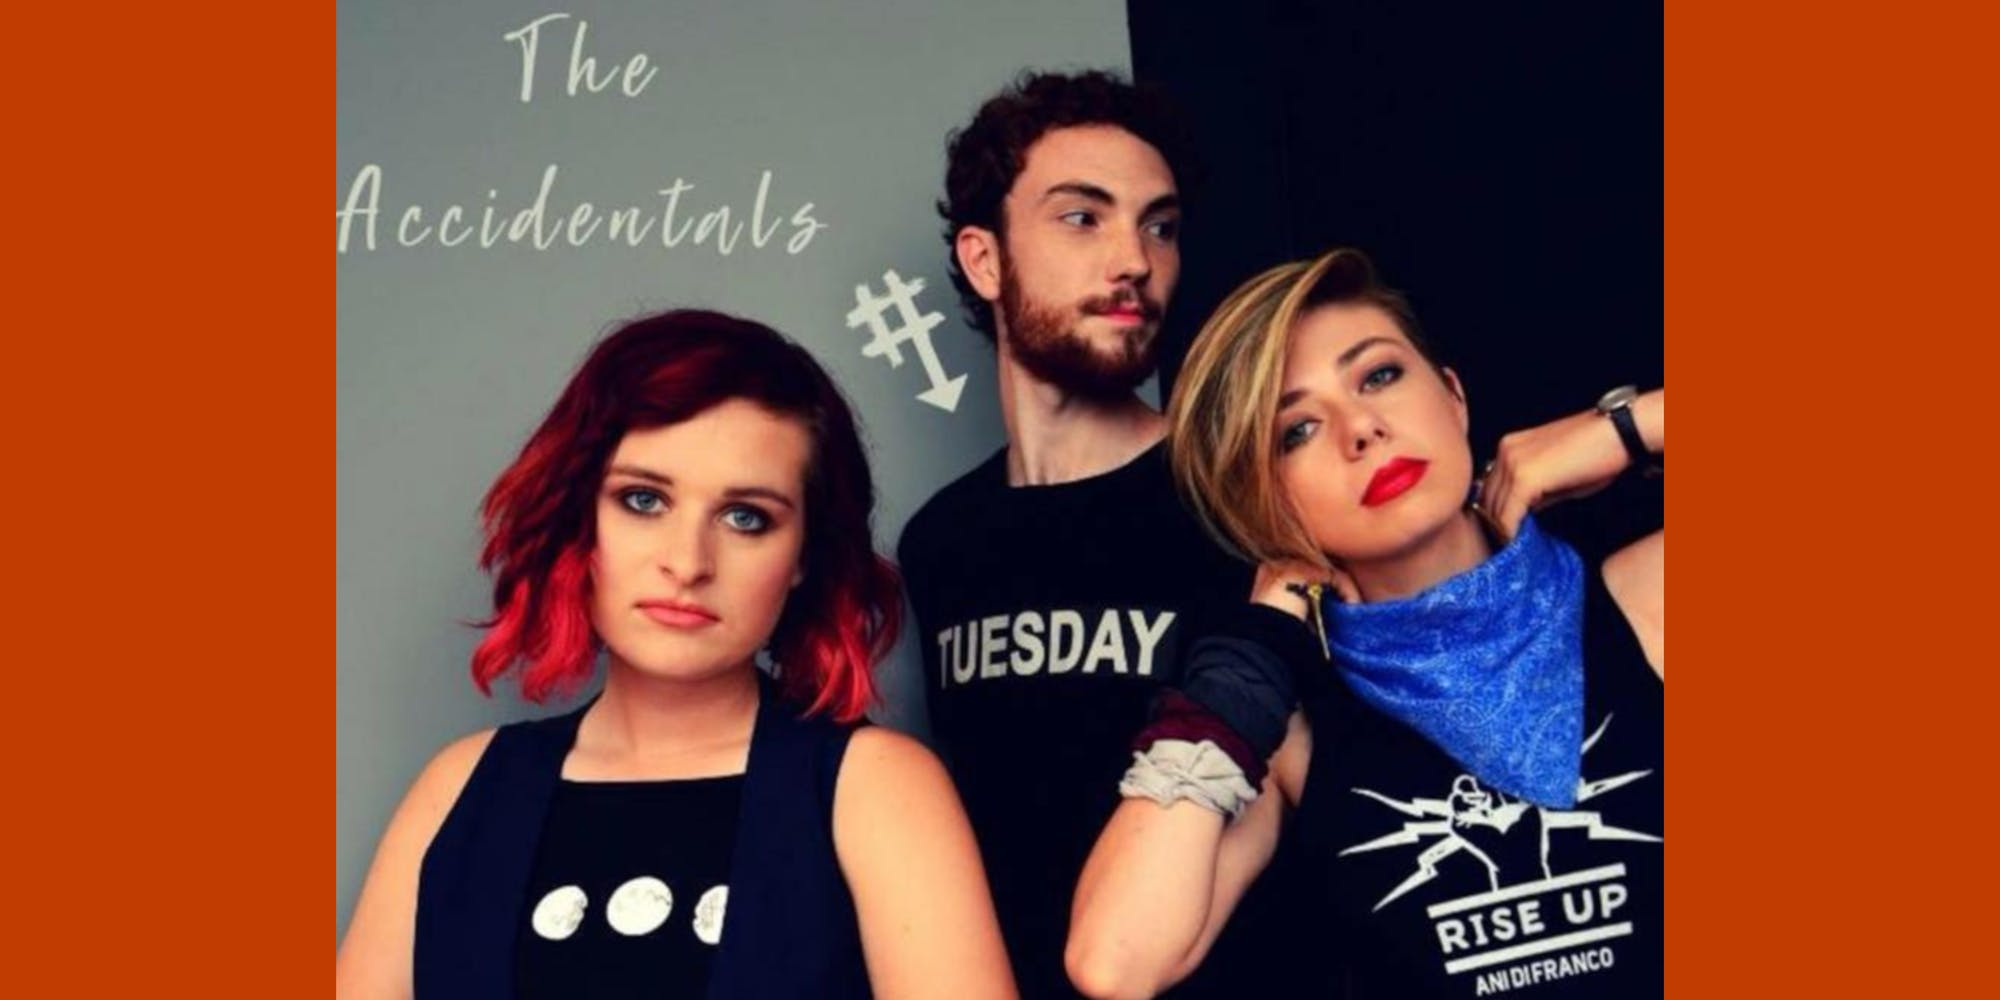 The Accidentals @ The Venue